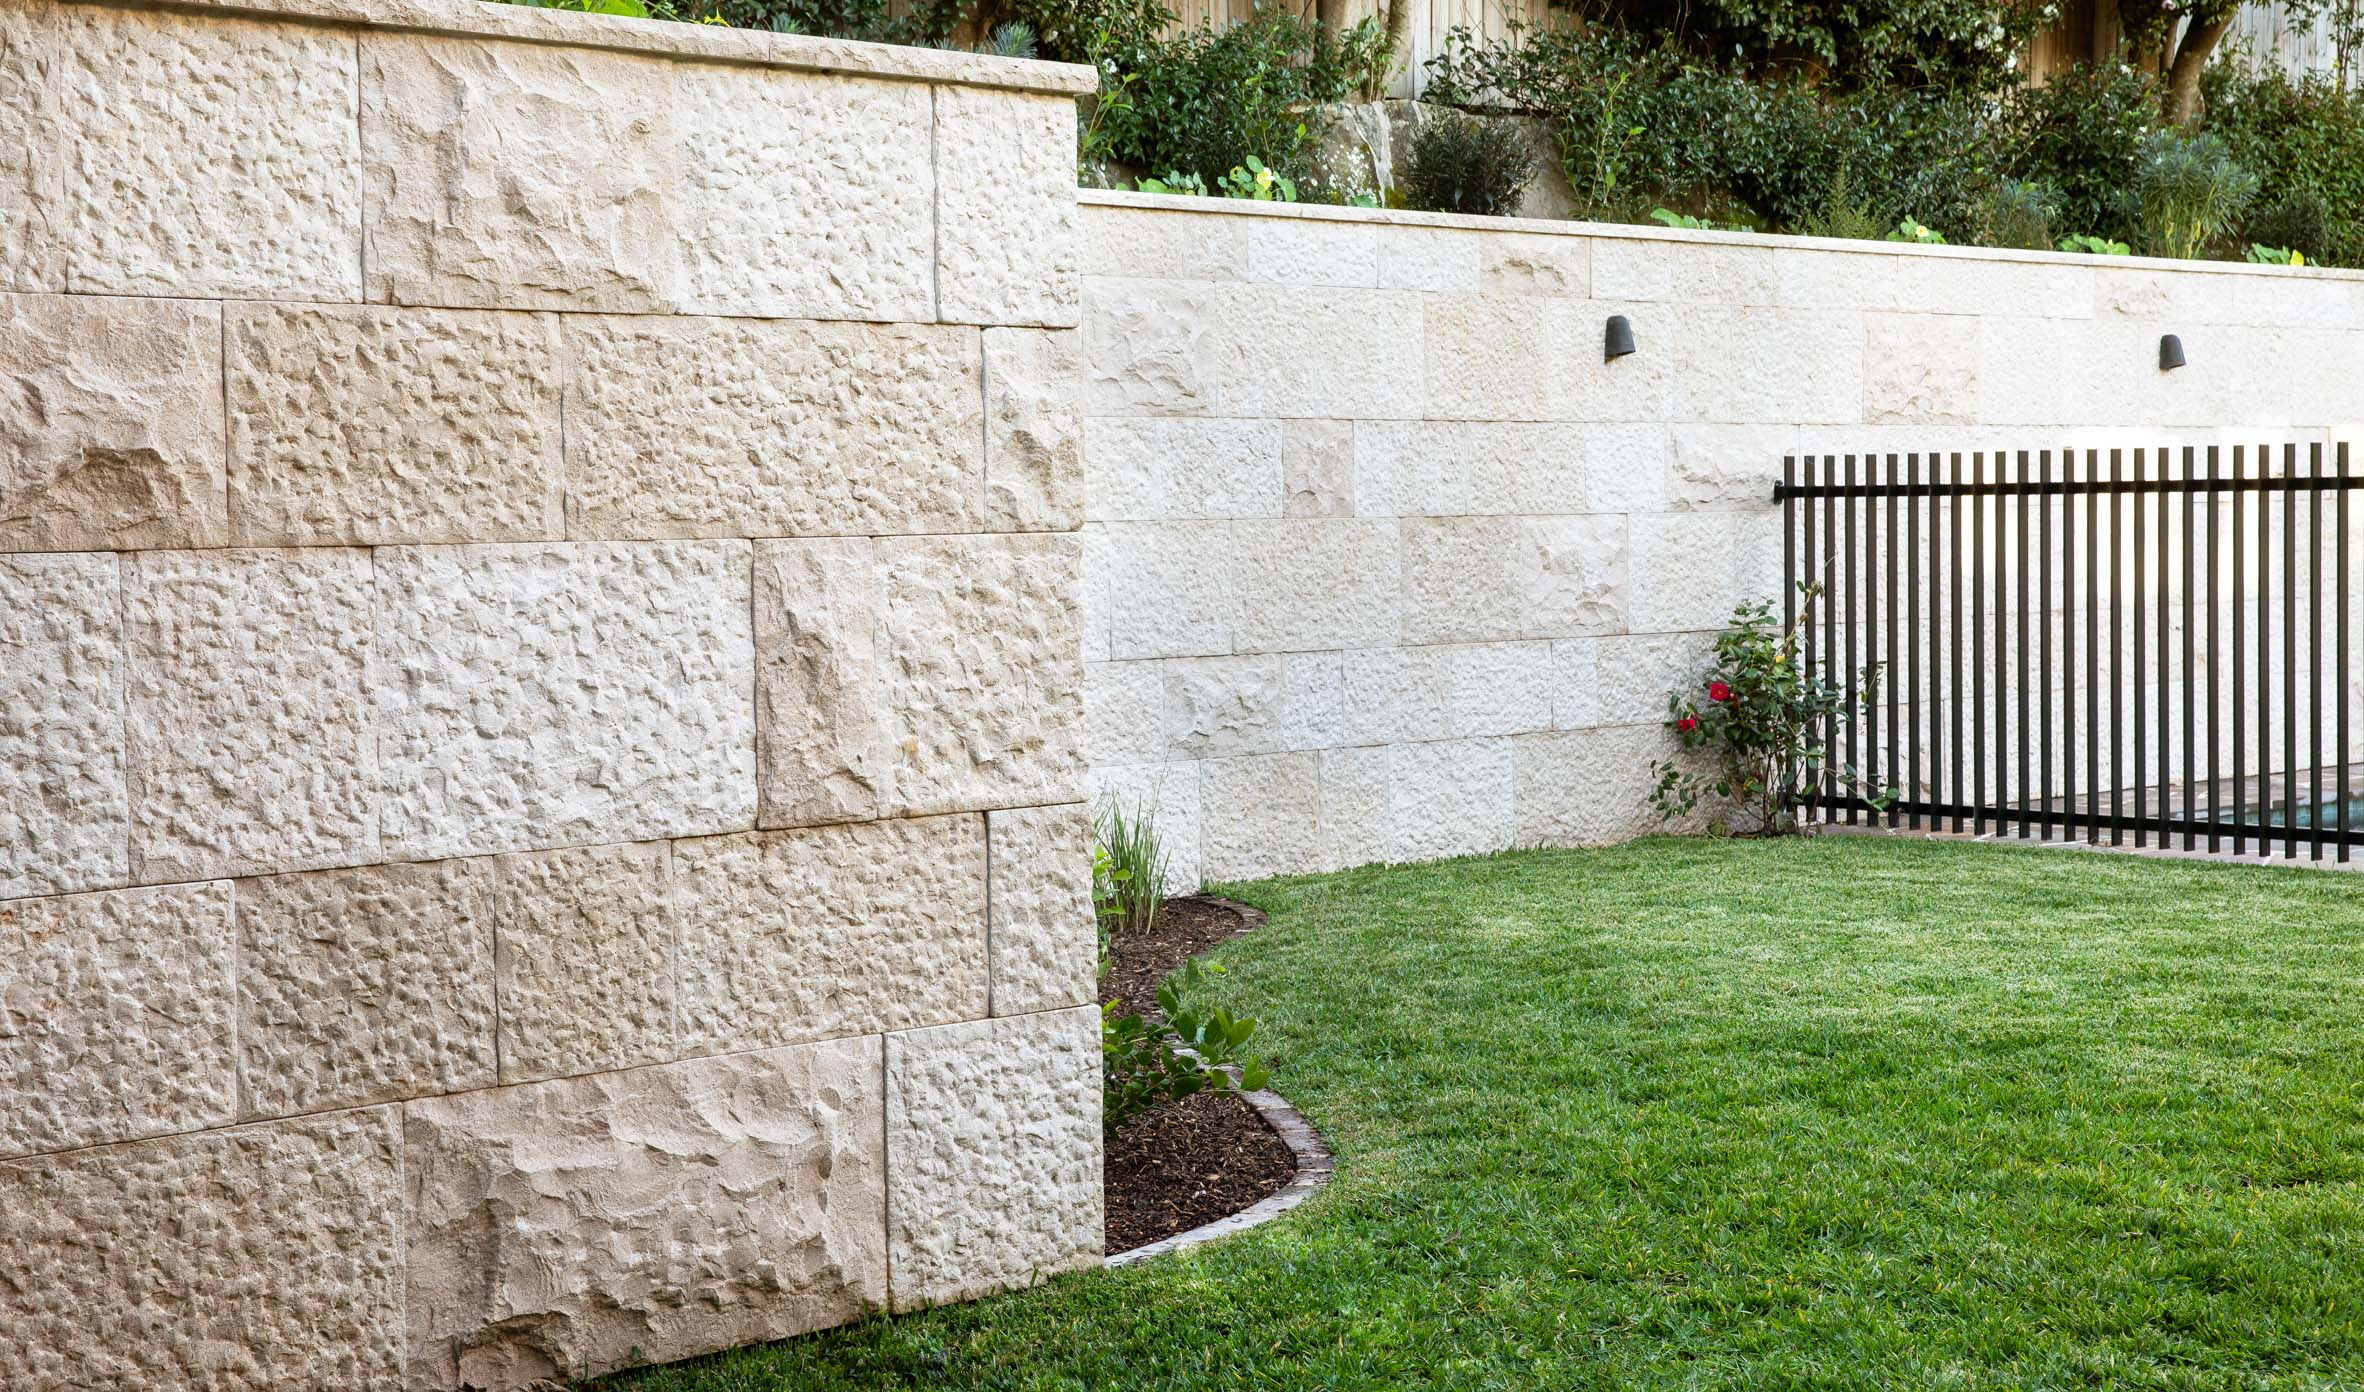 Wall-Cladding-and-Stacked-Stones Thumbnails wall-cladding-and-stacked-stones-19